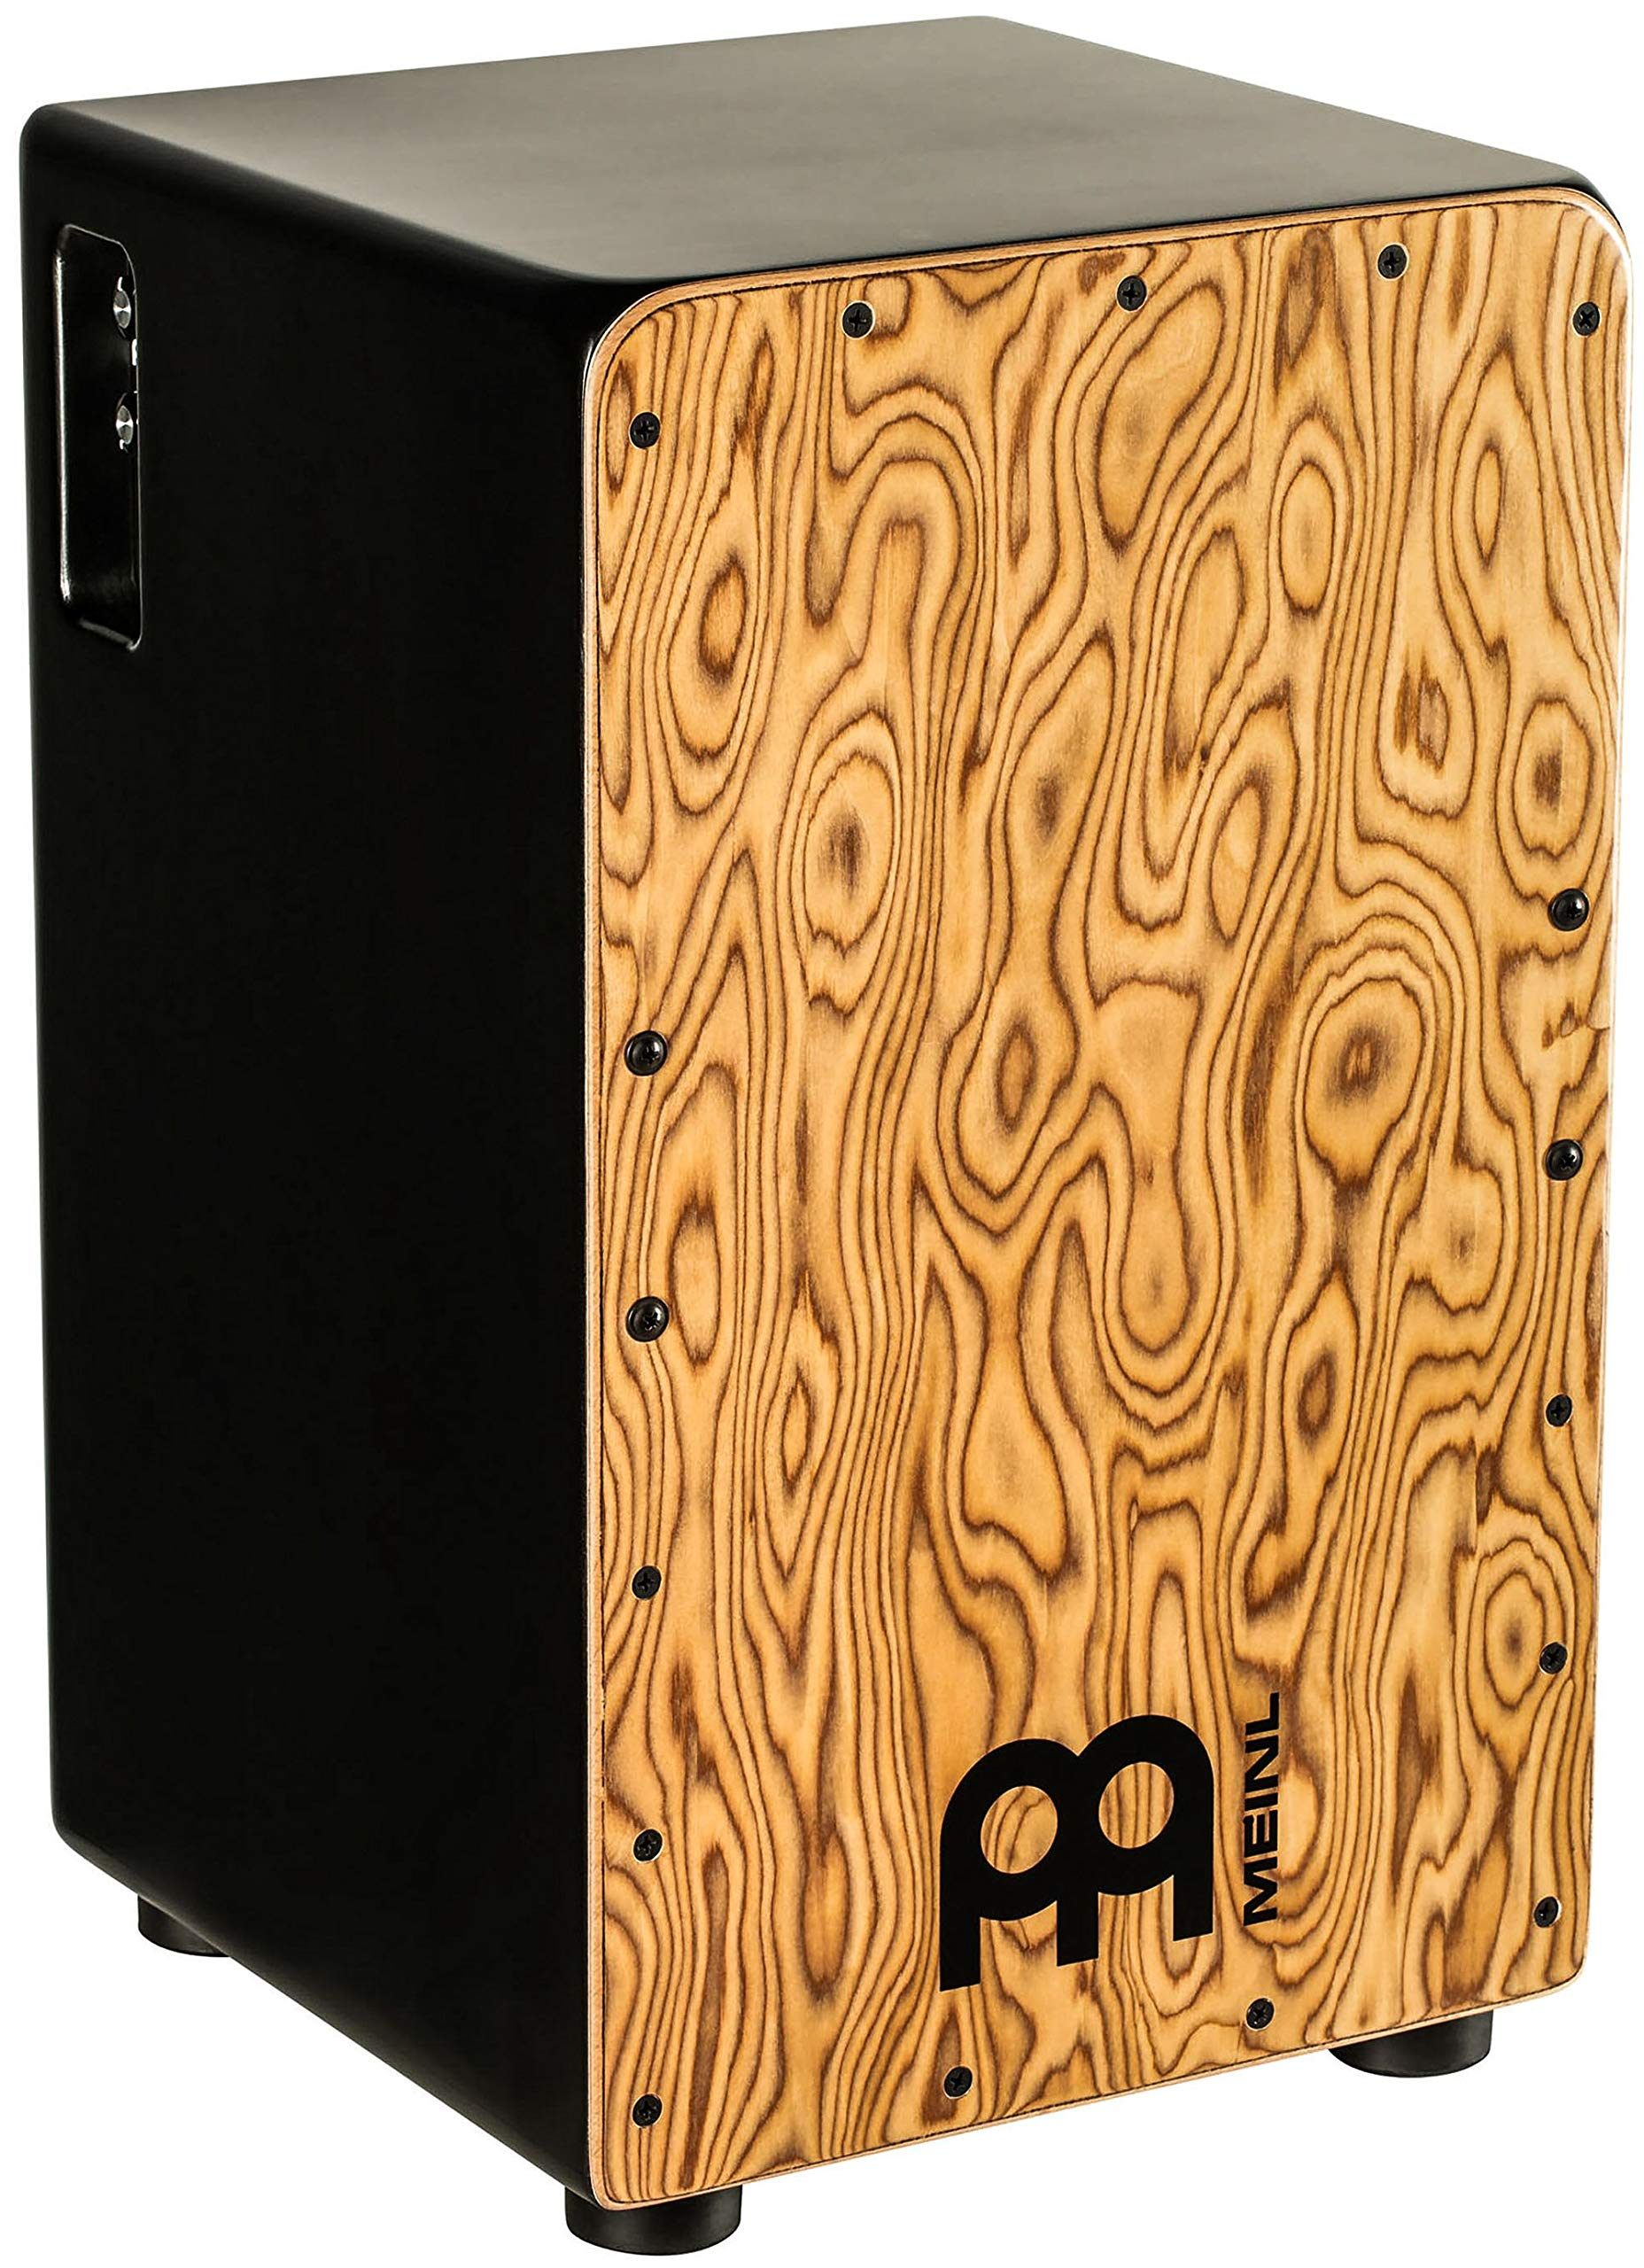 Meinl Pickup Cajon Box Drum with Internal Strings for Snare Effect - NOT MADE IN CHINA - Makah Burl Frontplate / Baltic Birch Body, Woodcraft Professional, 2-YEAR WARRANTY (PWCP100MB) by Meinl Percussion